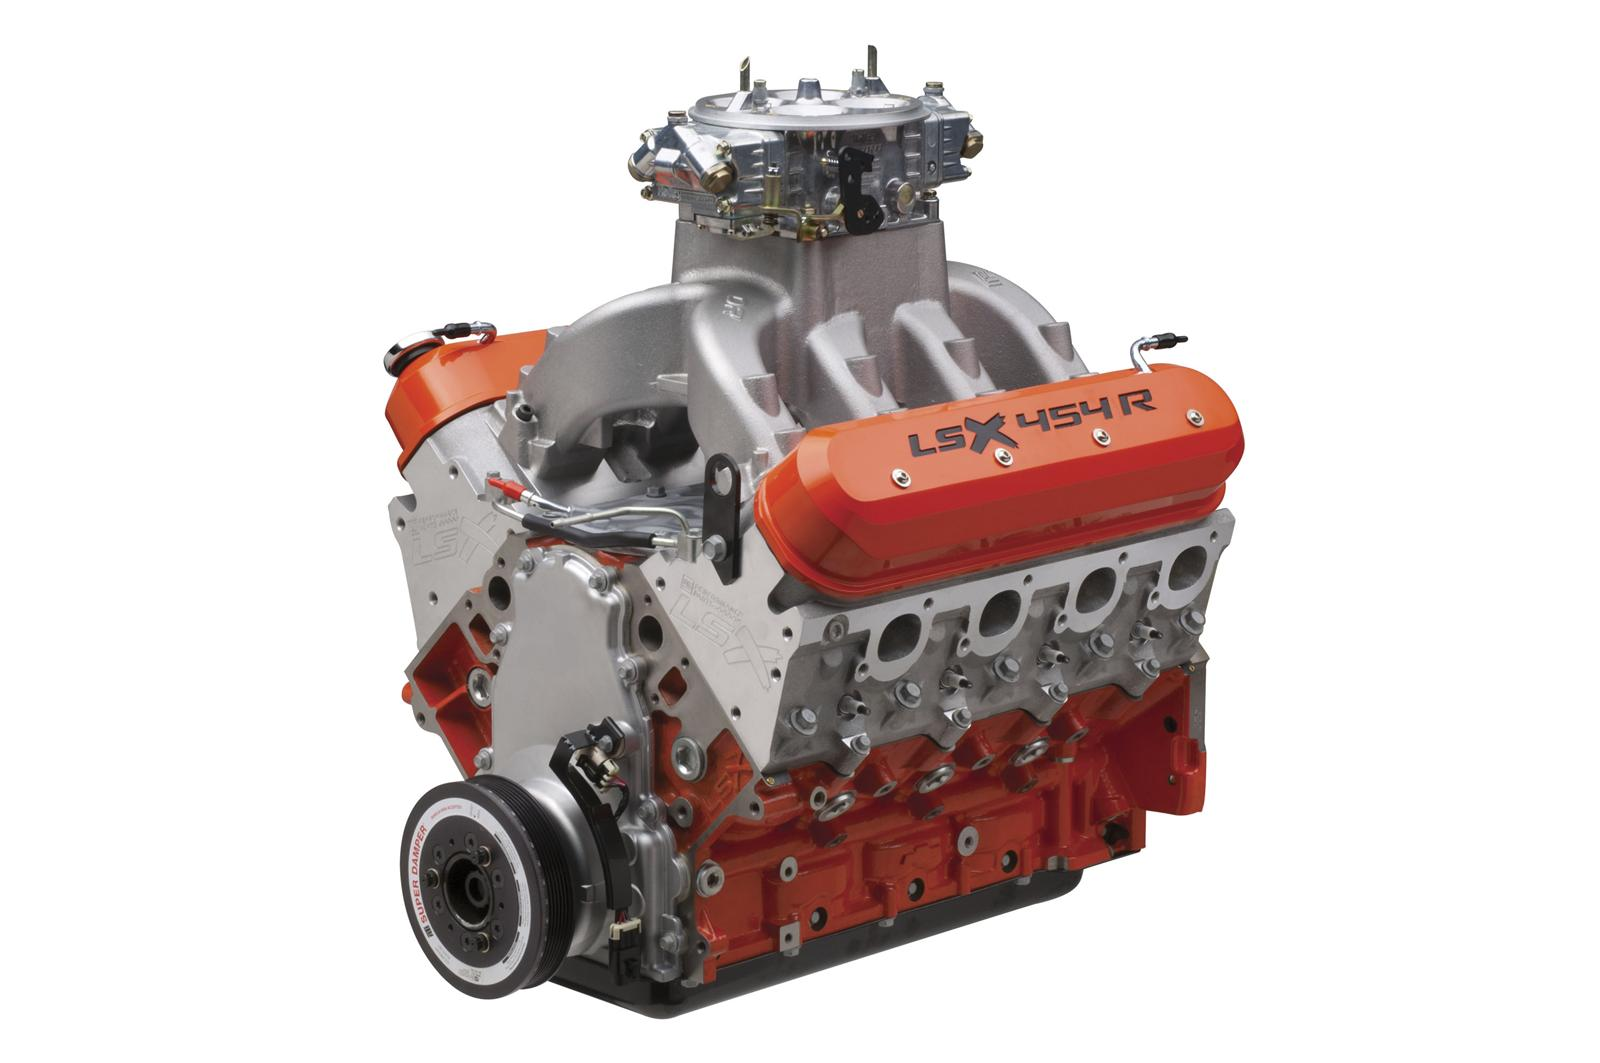 Ls crate guide a guide to ls crate motor options for your next chevrolet performance lsx 454r crate engine malvernweather Gallery